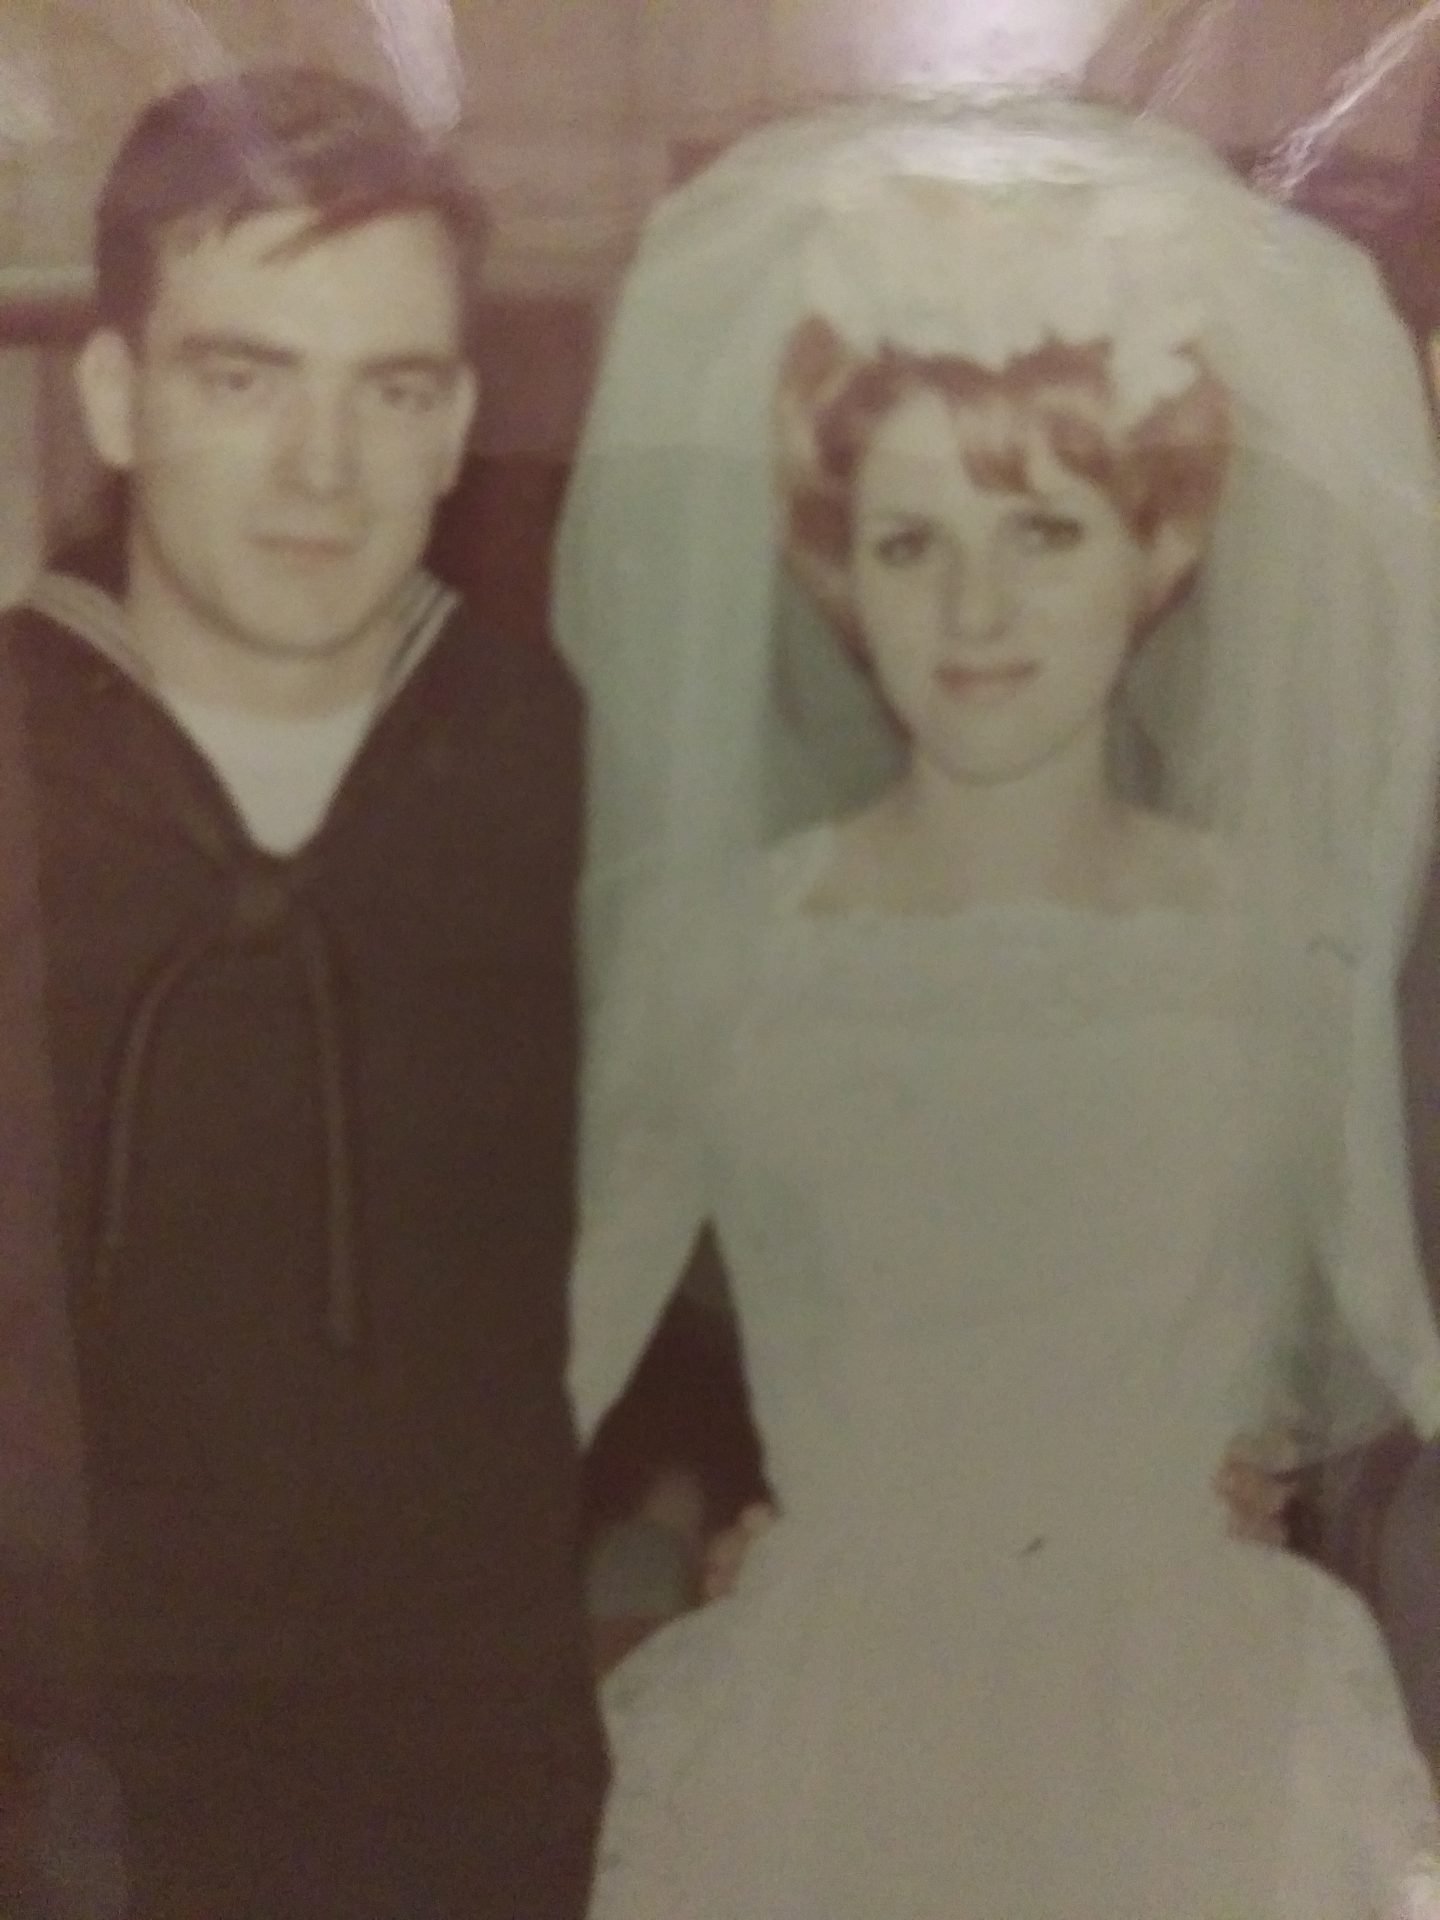 52 years February 14th, 1969 till February 14th, 2021. Happy Valentine's day and happy anniversary Shaun.  Love forever.